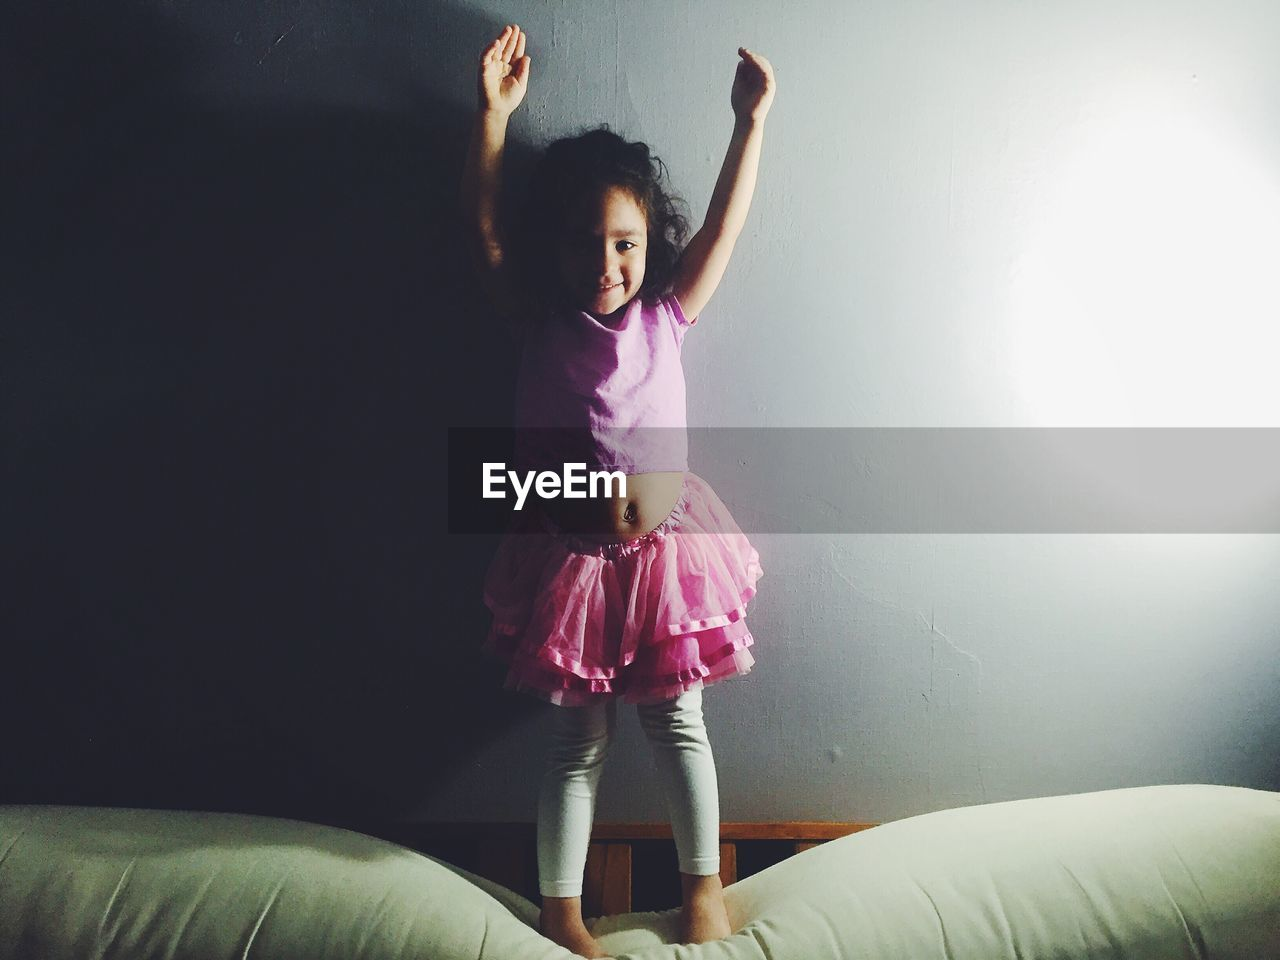 Portrait Of Happy Ballerina Standing On Bed With Arms Raised